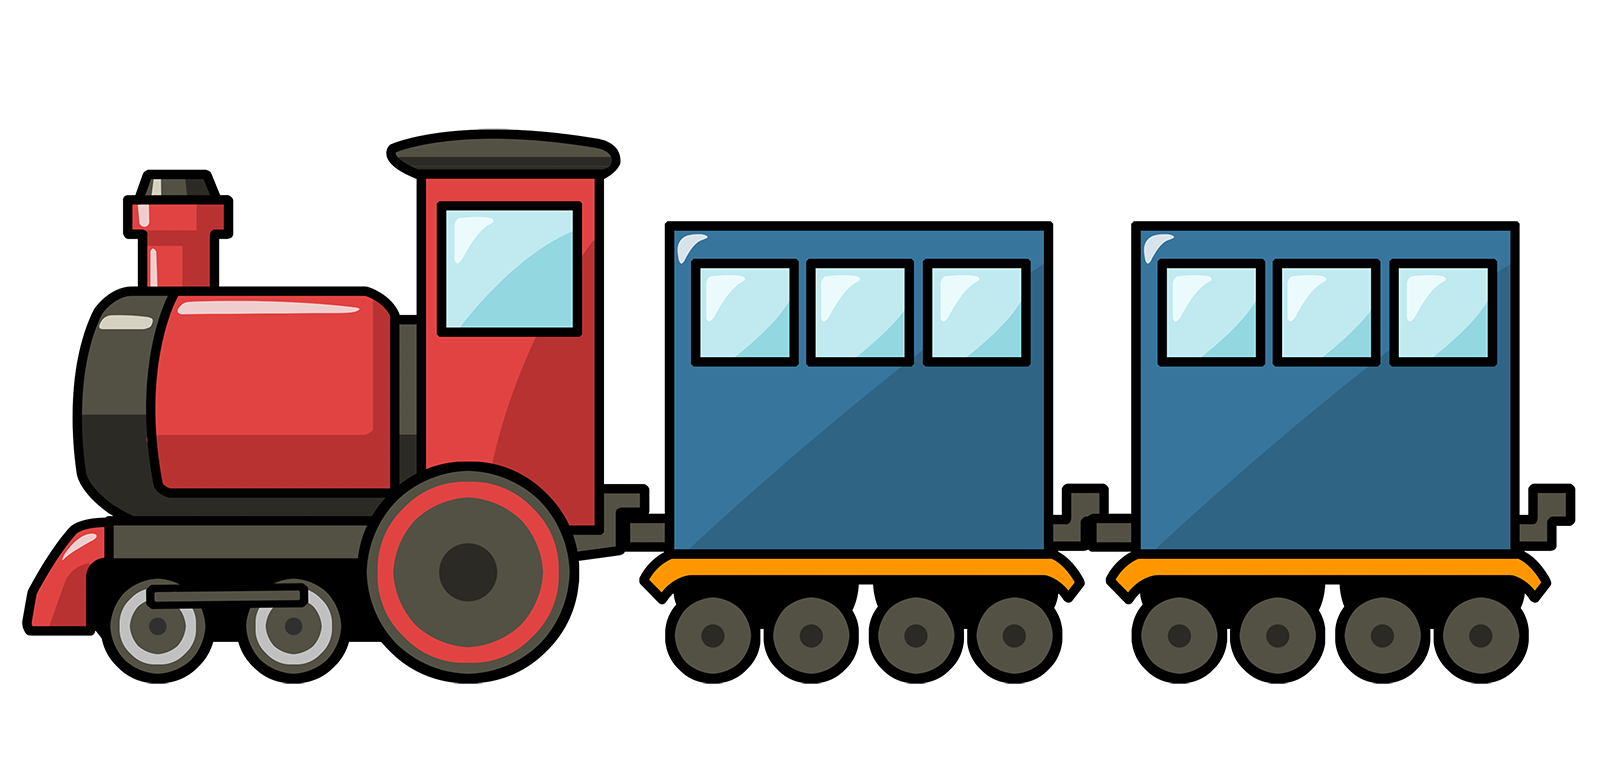 Road clipart side view. Free steam train download